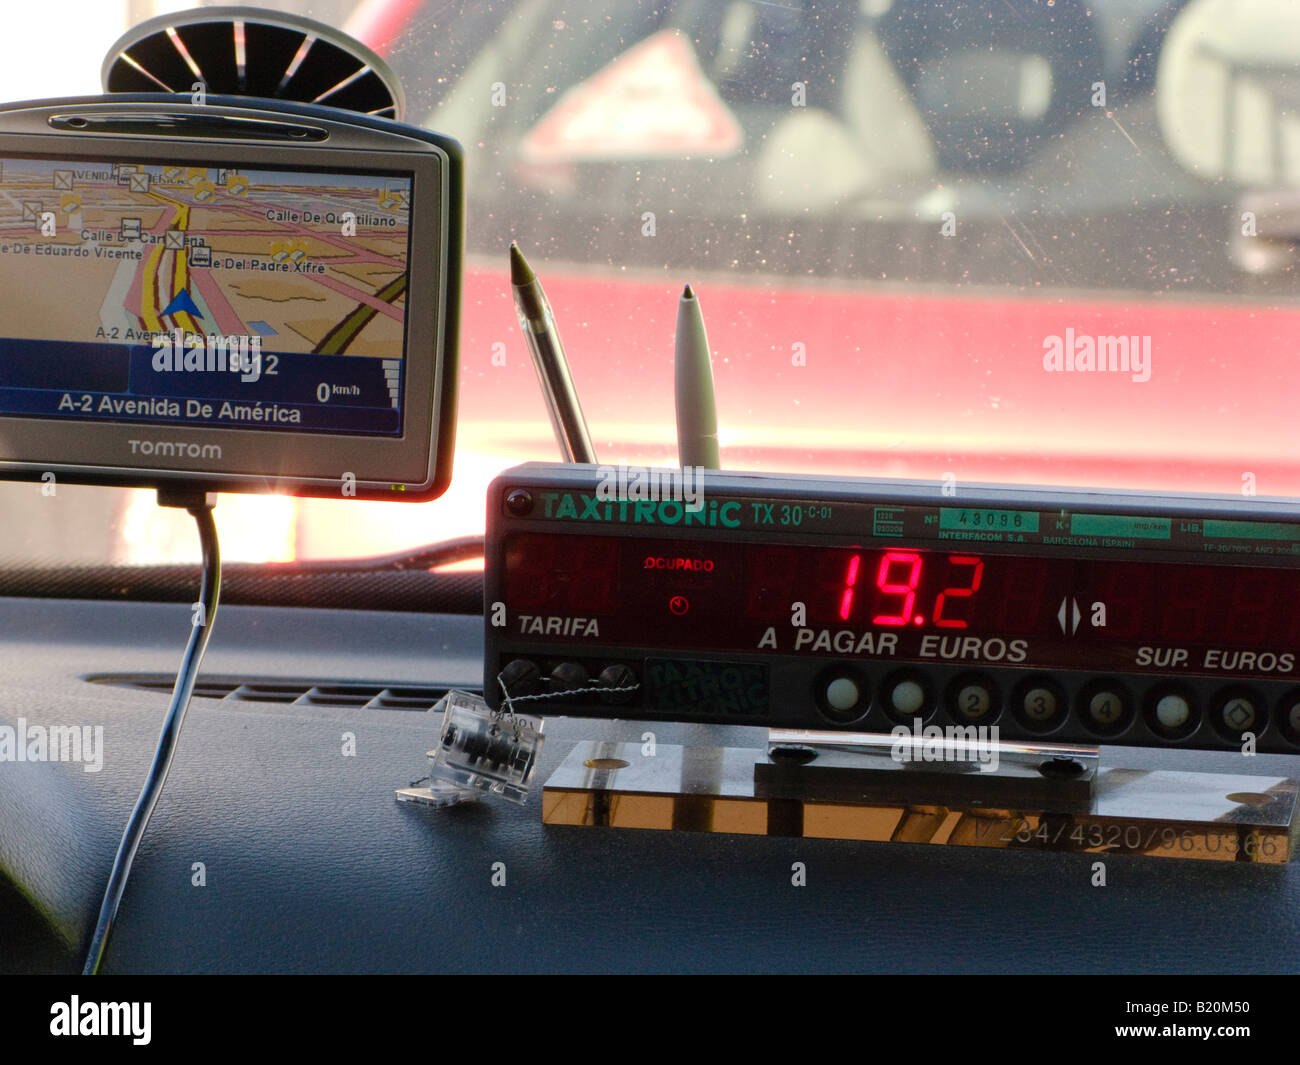 SPAIN Madrid Fare counter on dashboard of taxi cab price in Euros GPS system with streets of city - Stock Image